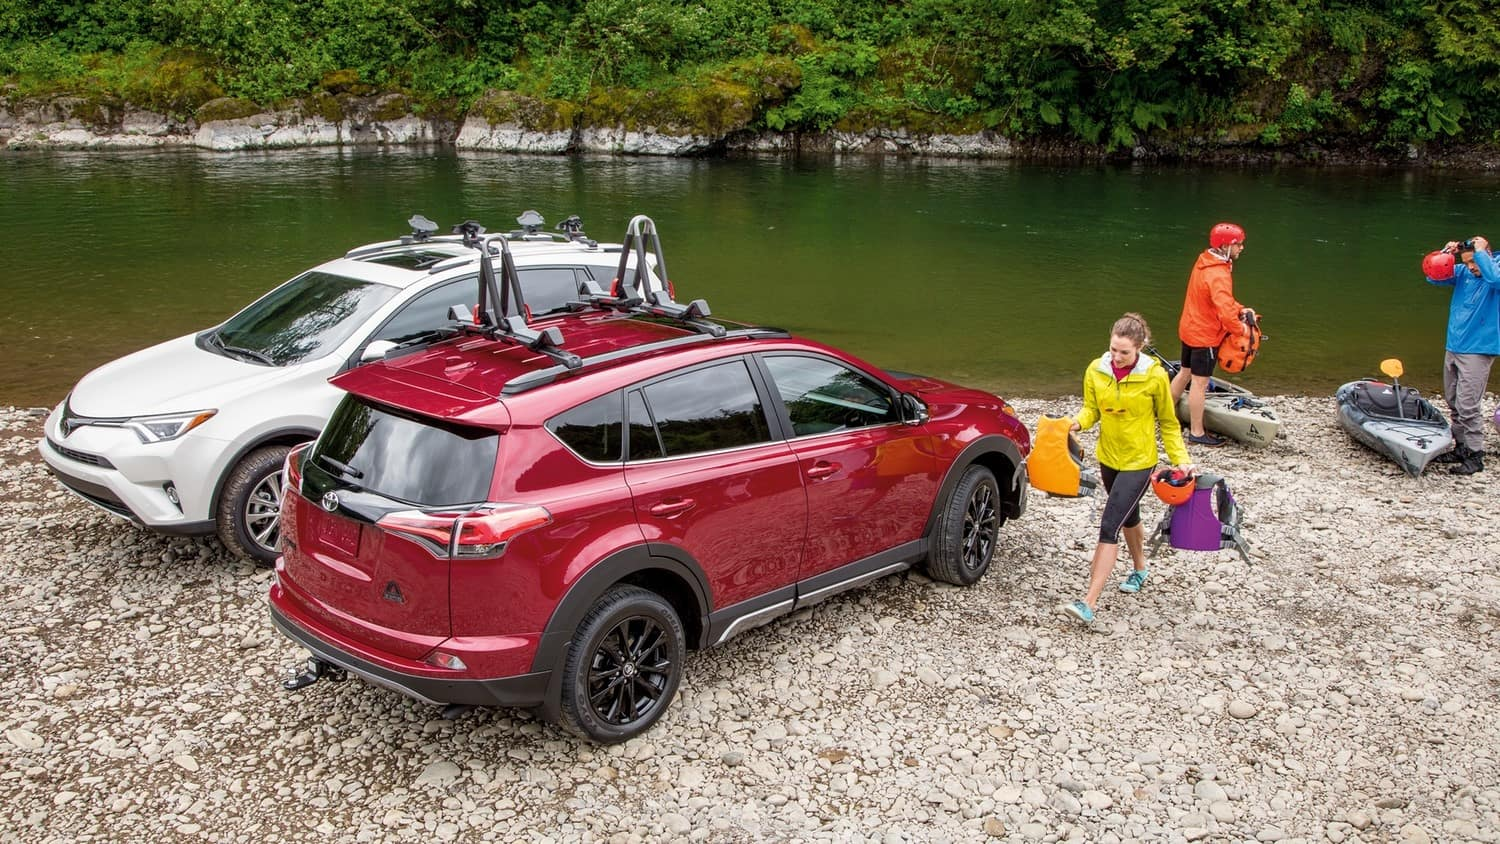 Rav4's near rivers edge with gear